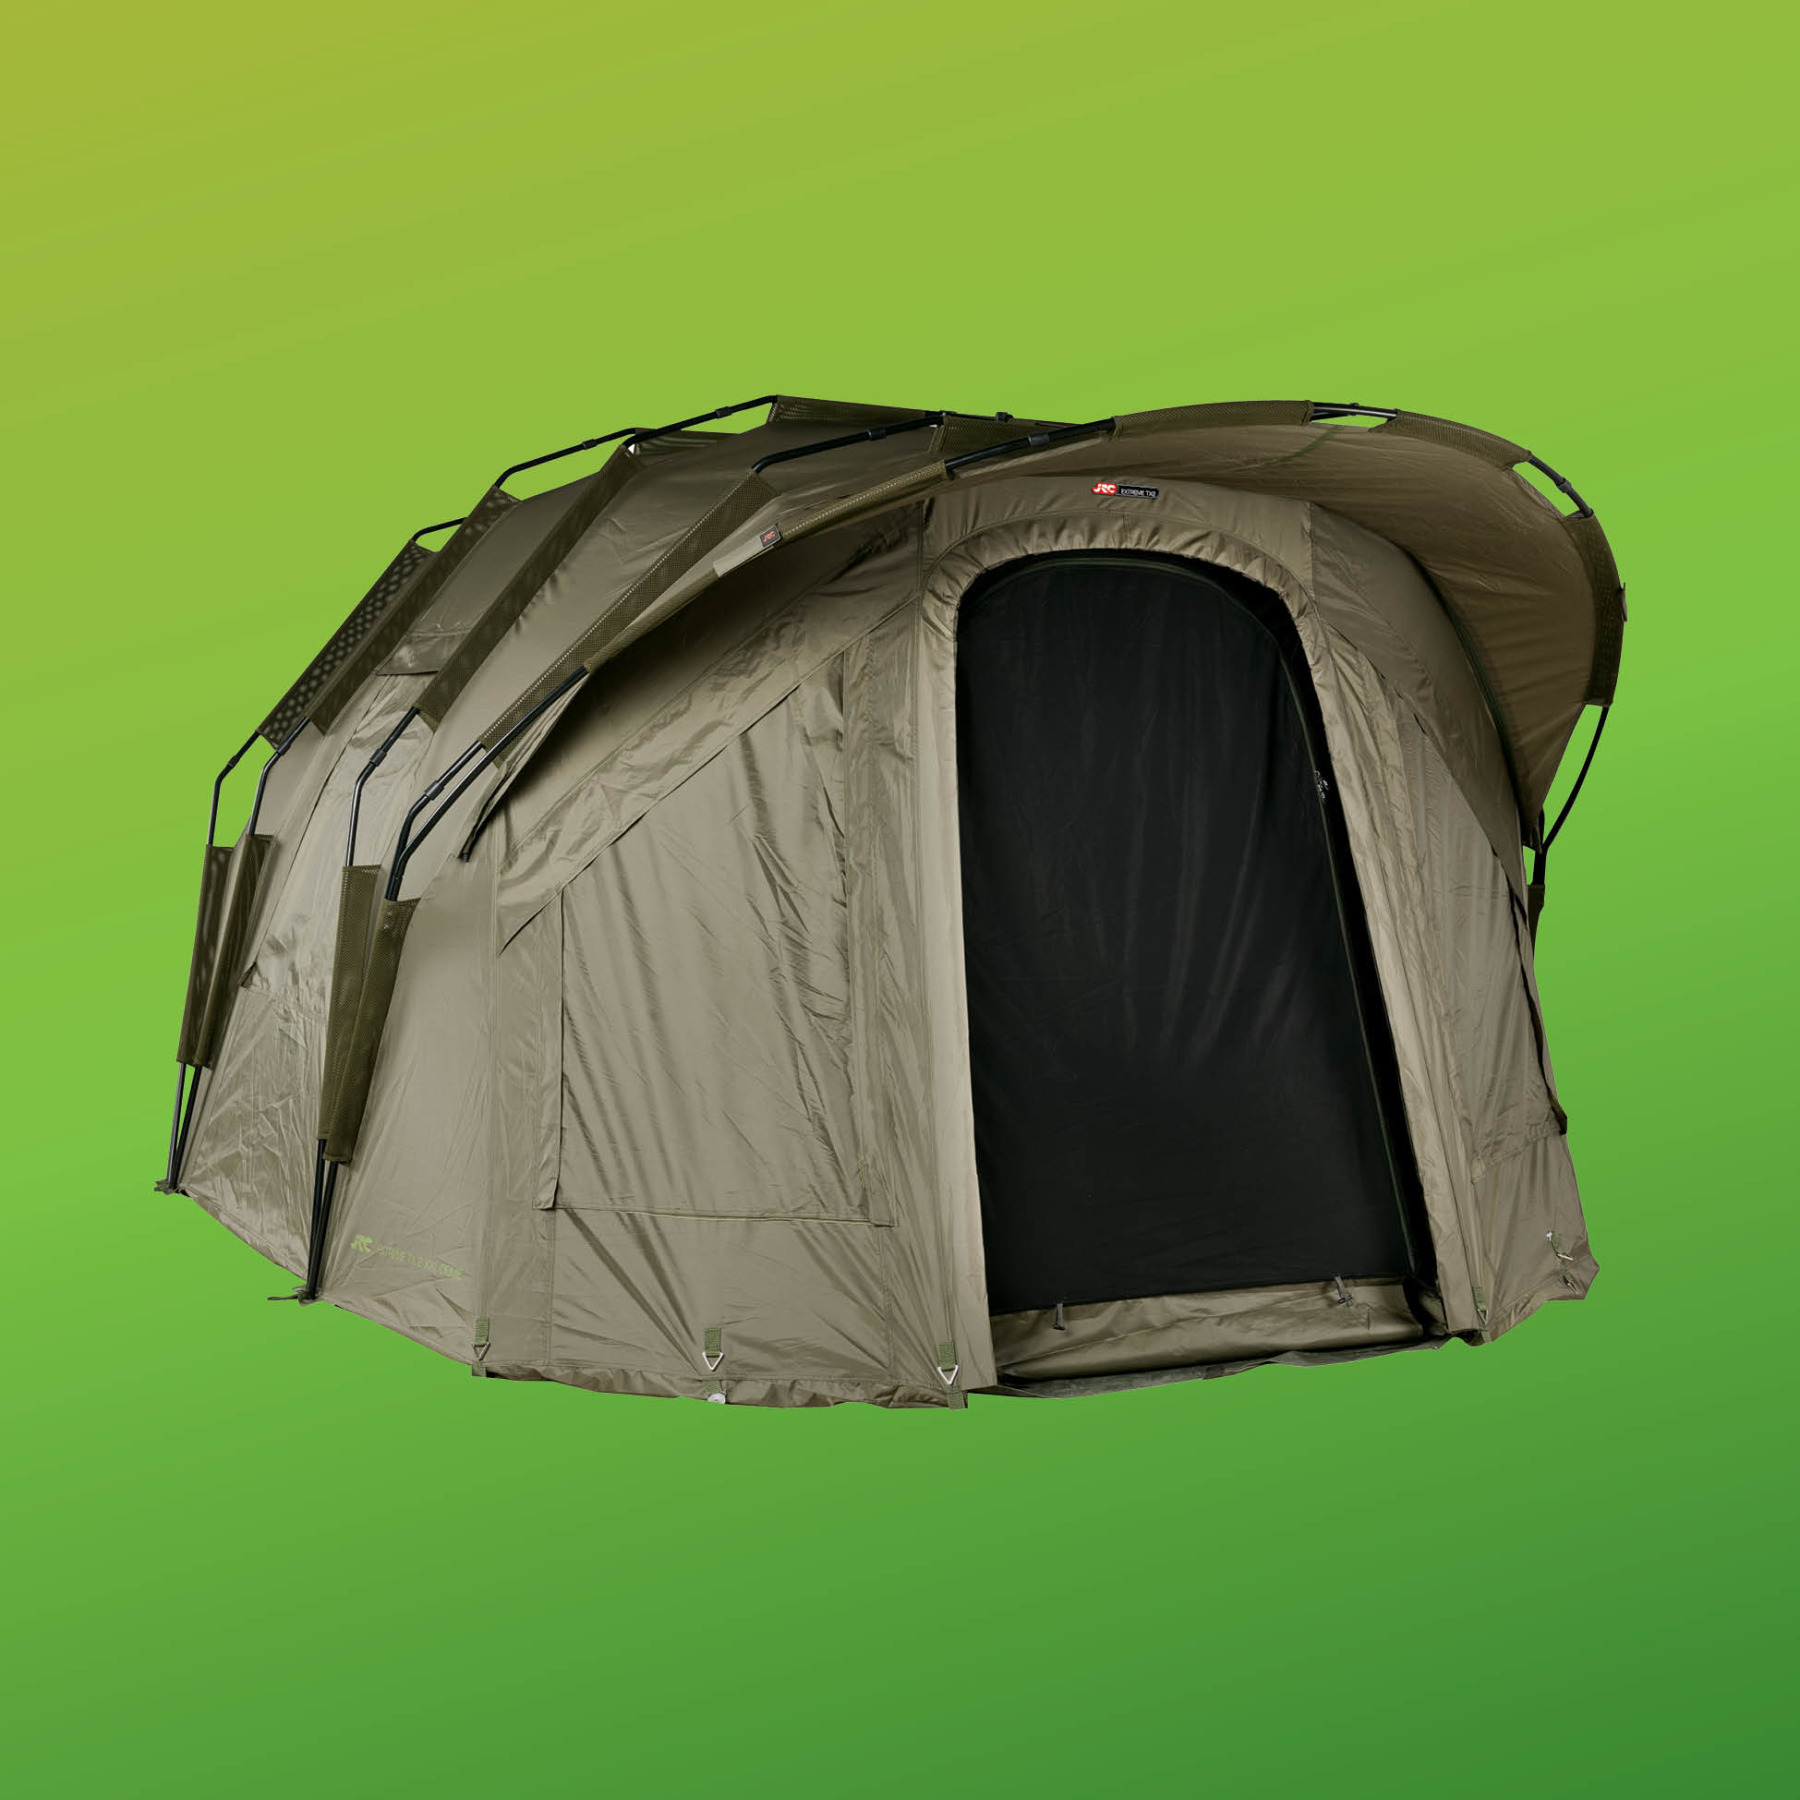 The TX2 XXL Dome in all his humongous beauty